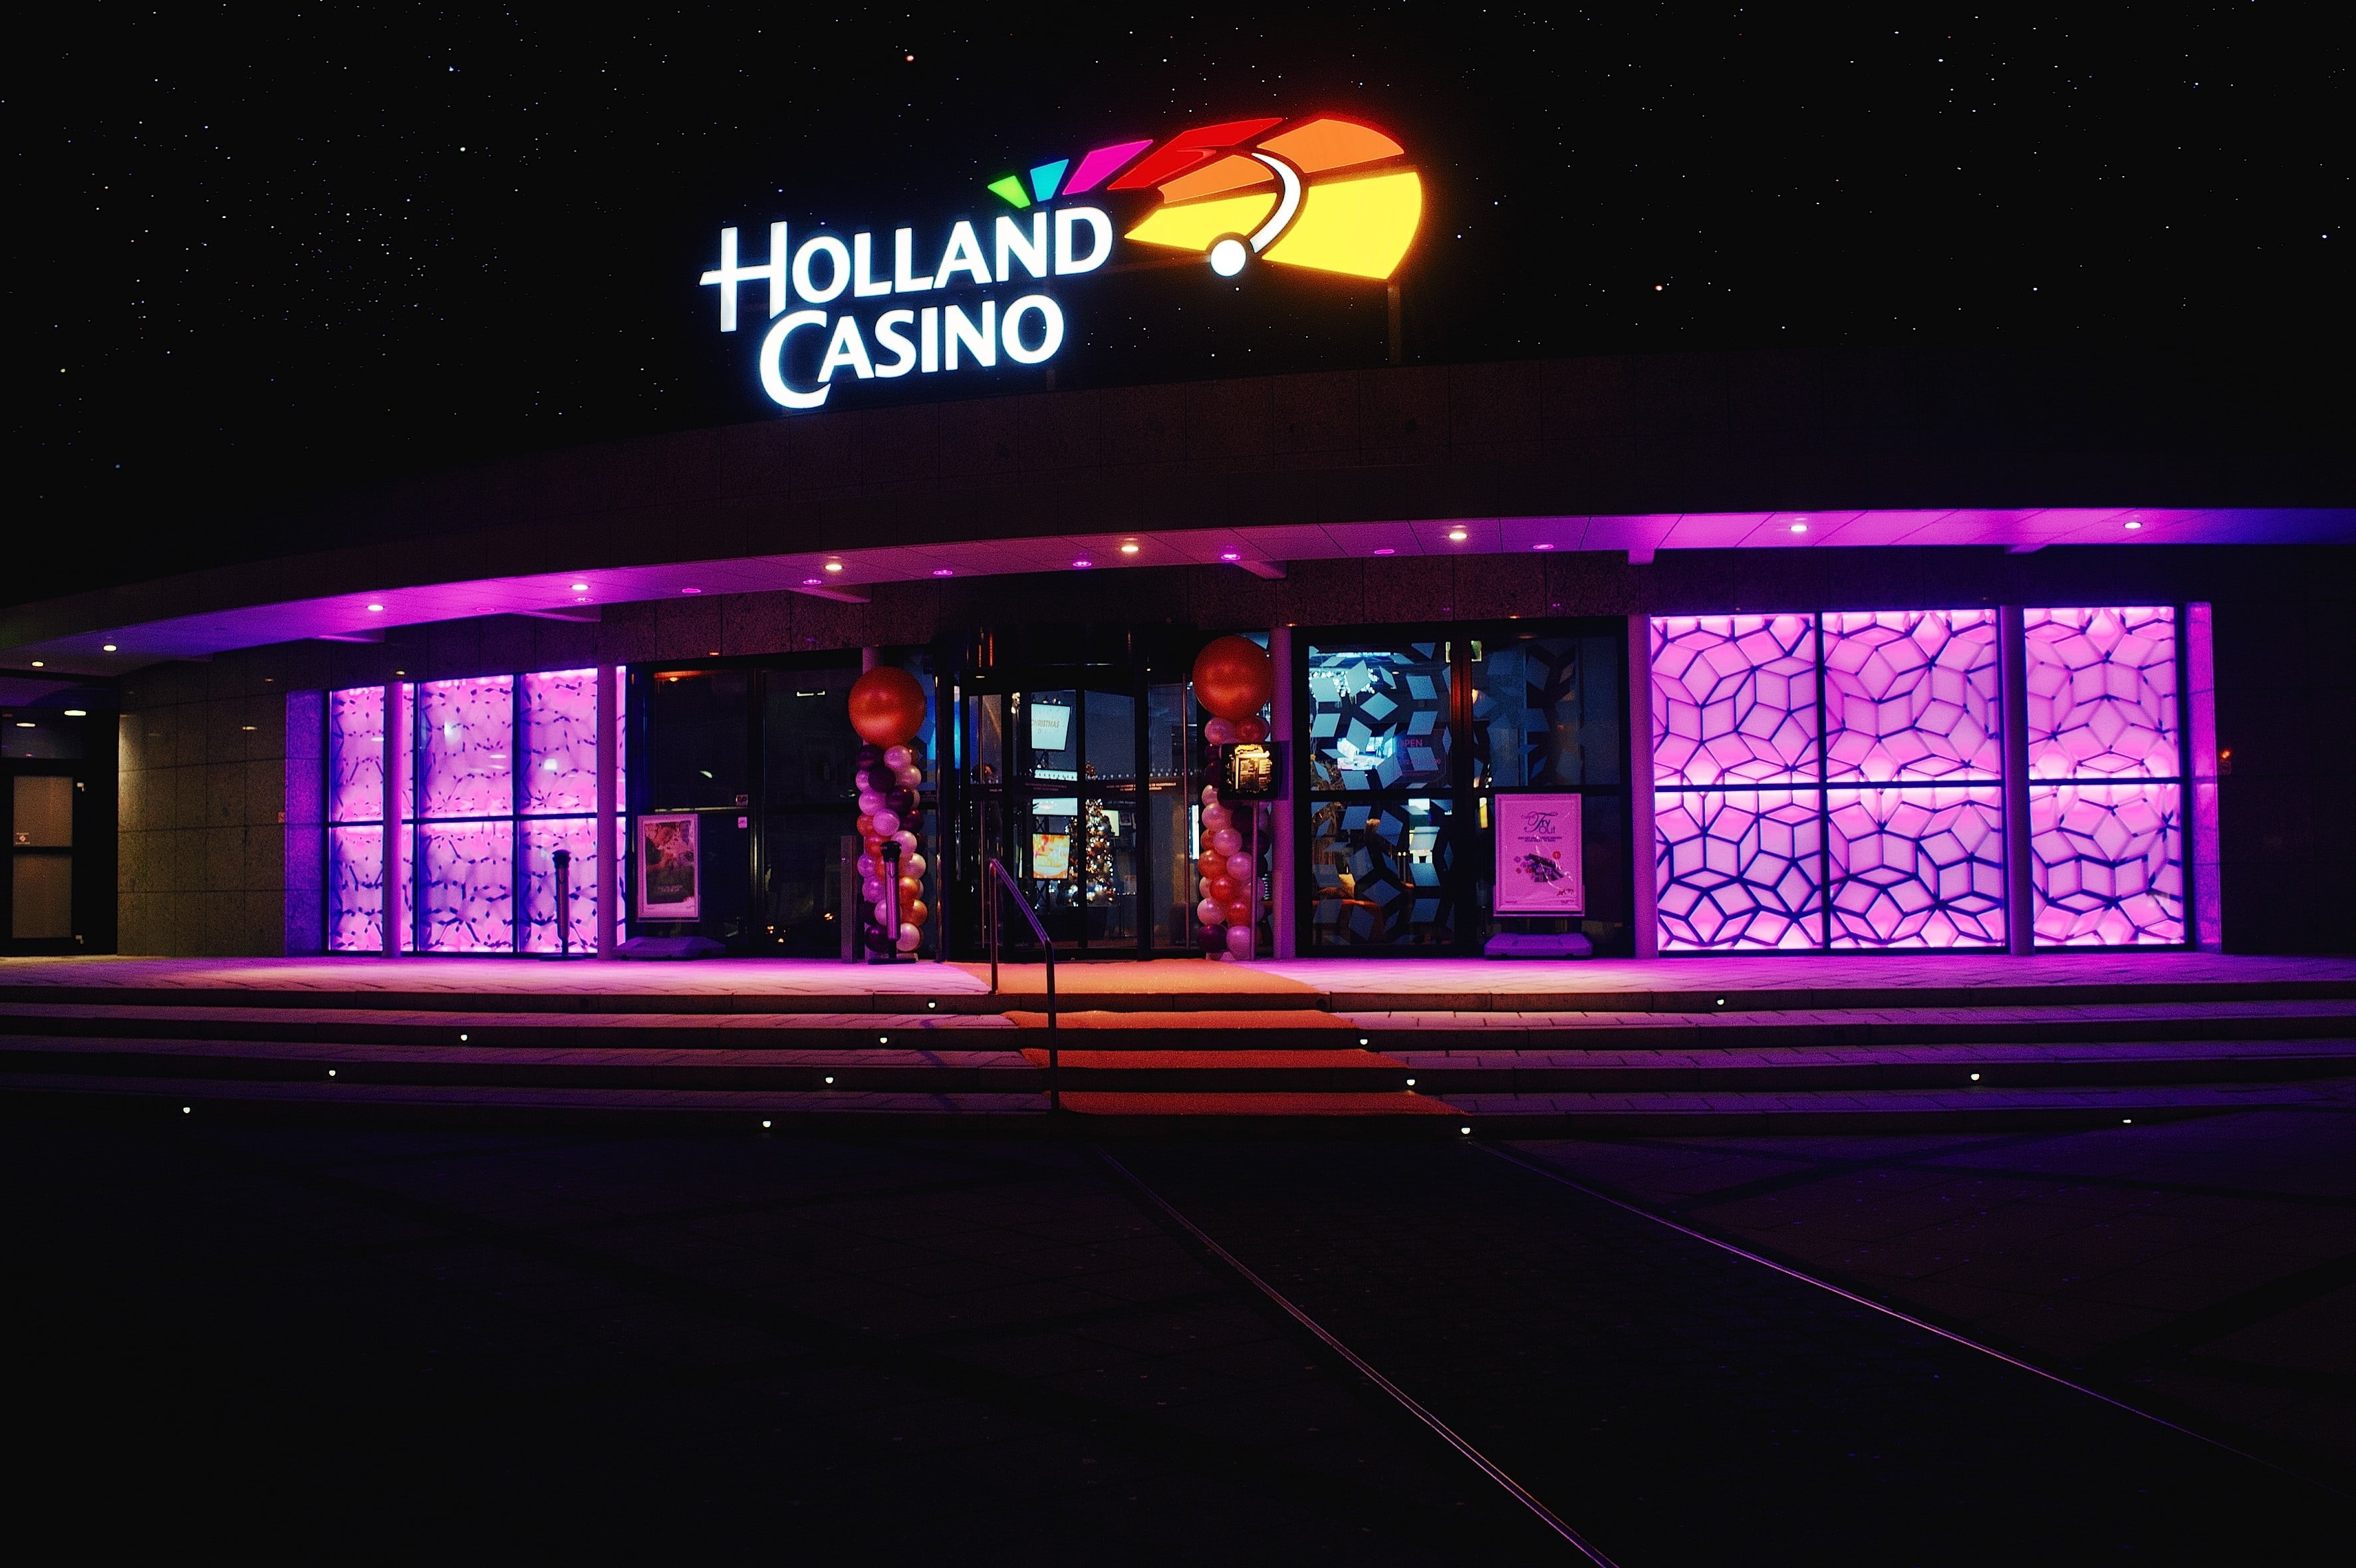 Holland Casino Hires Selligent For Enhanced Guest Experiences